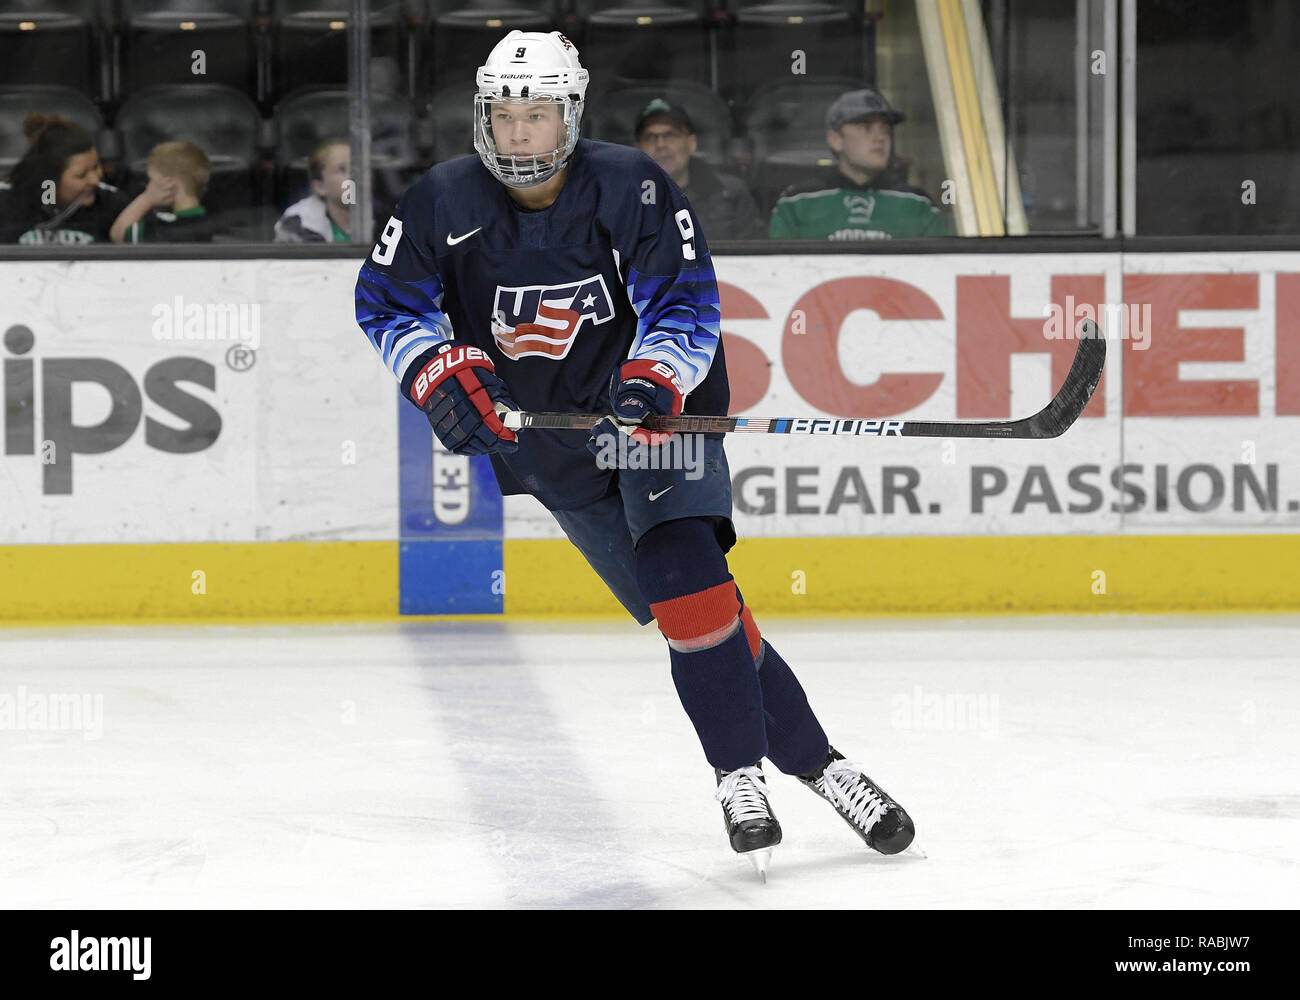 December 29, 2018 US National Under 18 team forward Matthew Boldy (9) takes part in a pre-game skate before an exhibition hockey game against the University of North Dakota Fighting Hawks at Ralph Engelstad Arena in Grand Forks, ND. Photo by Russell Hons/CSM Stock Photo